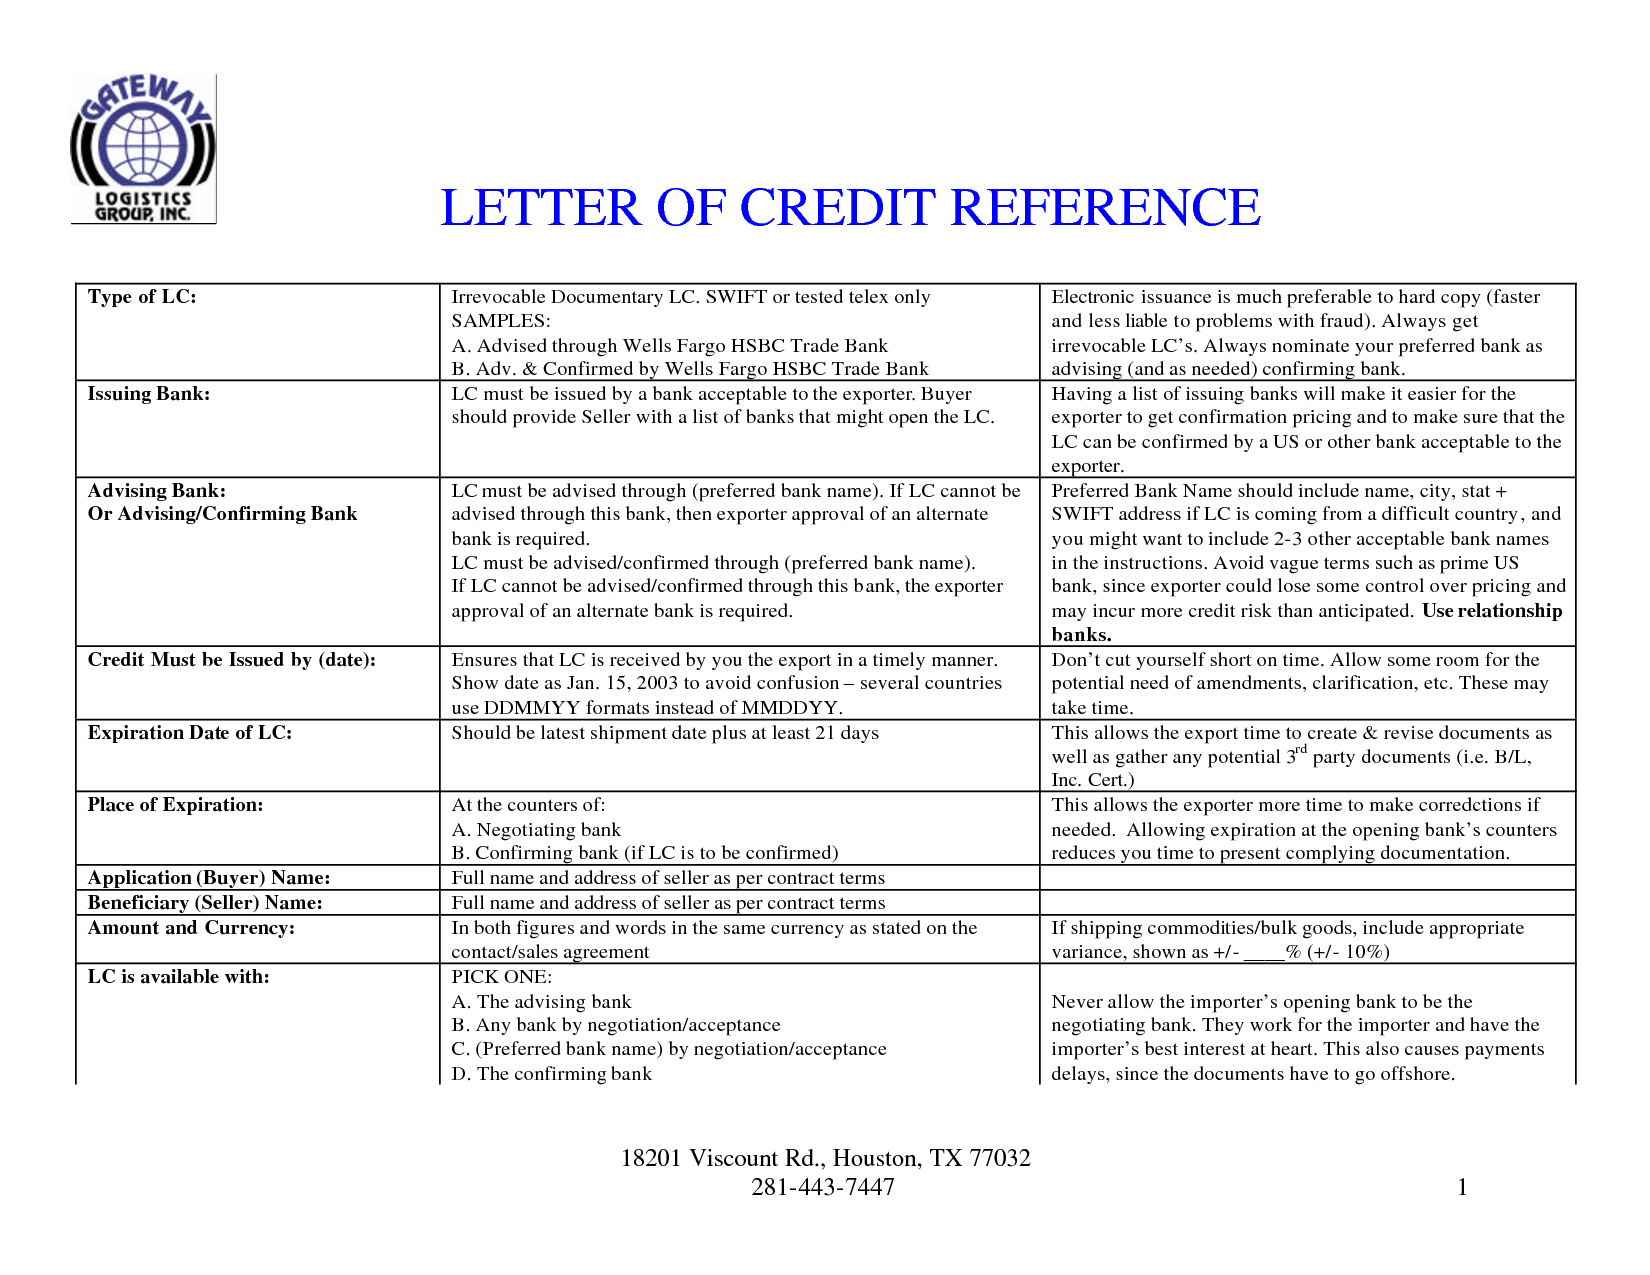 credit reference request